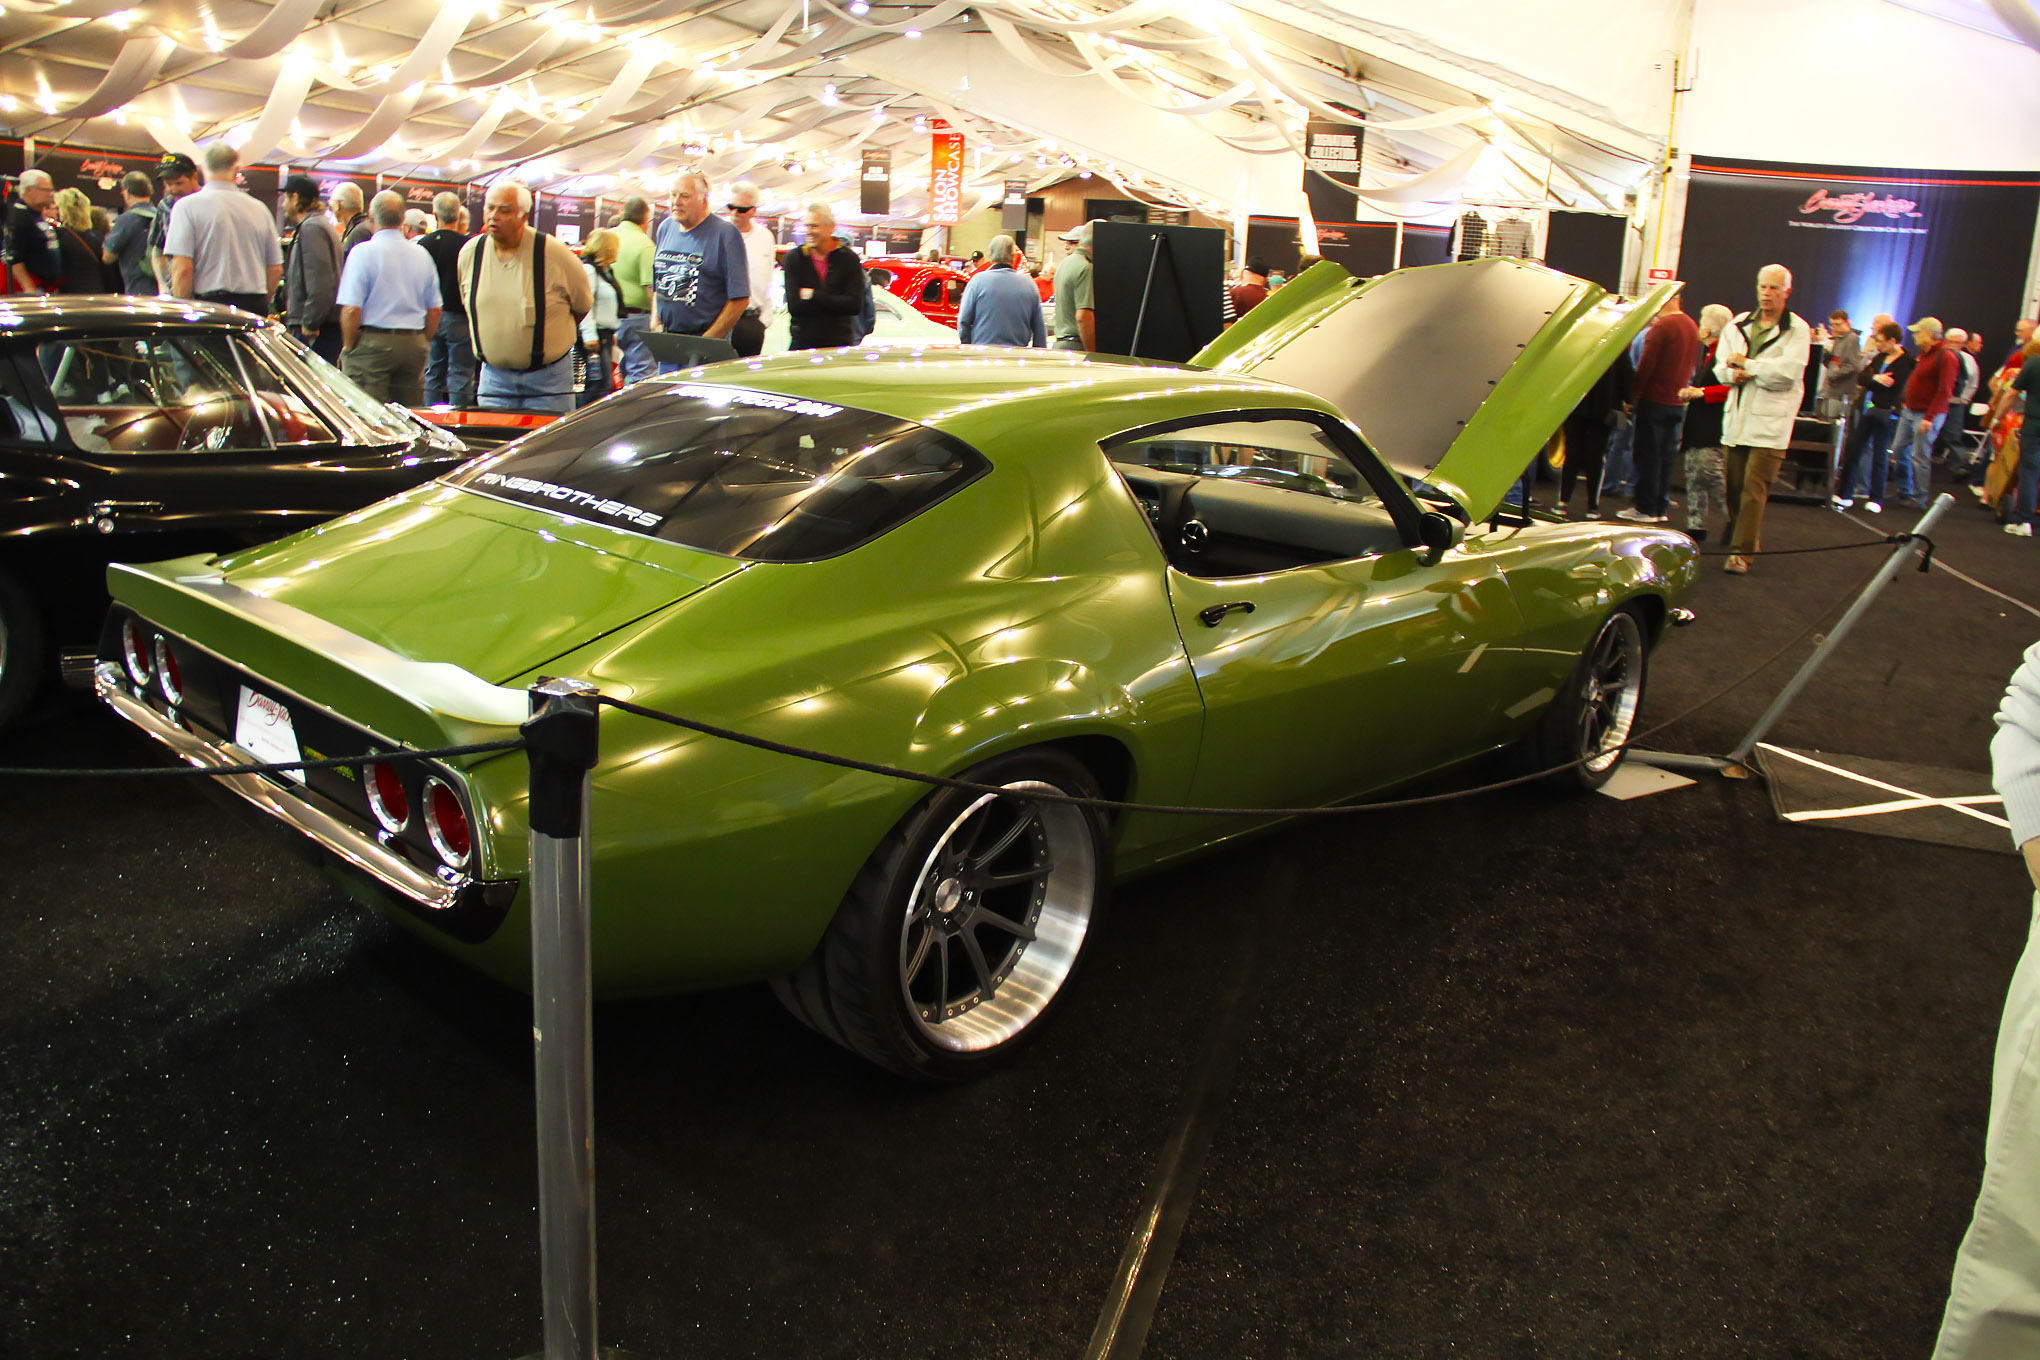 The Ringbrothers Grinch, a 1970 Camaro, went for $192,500.